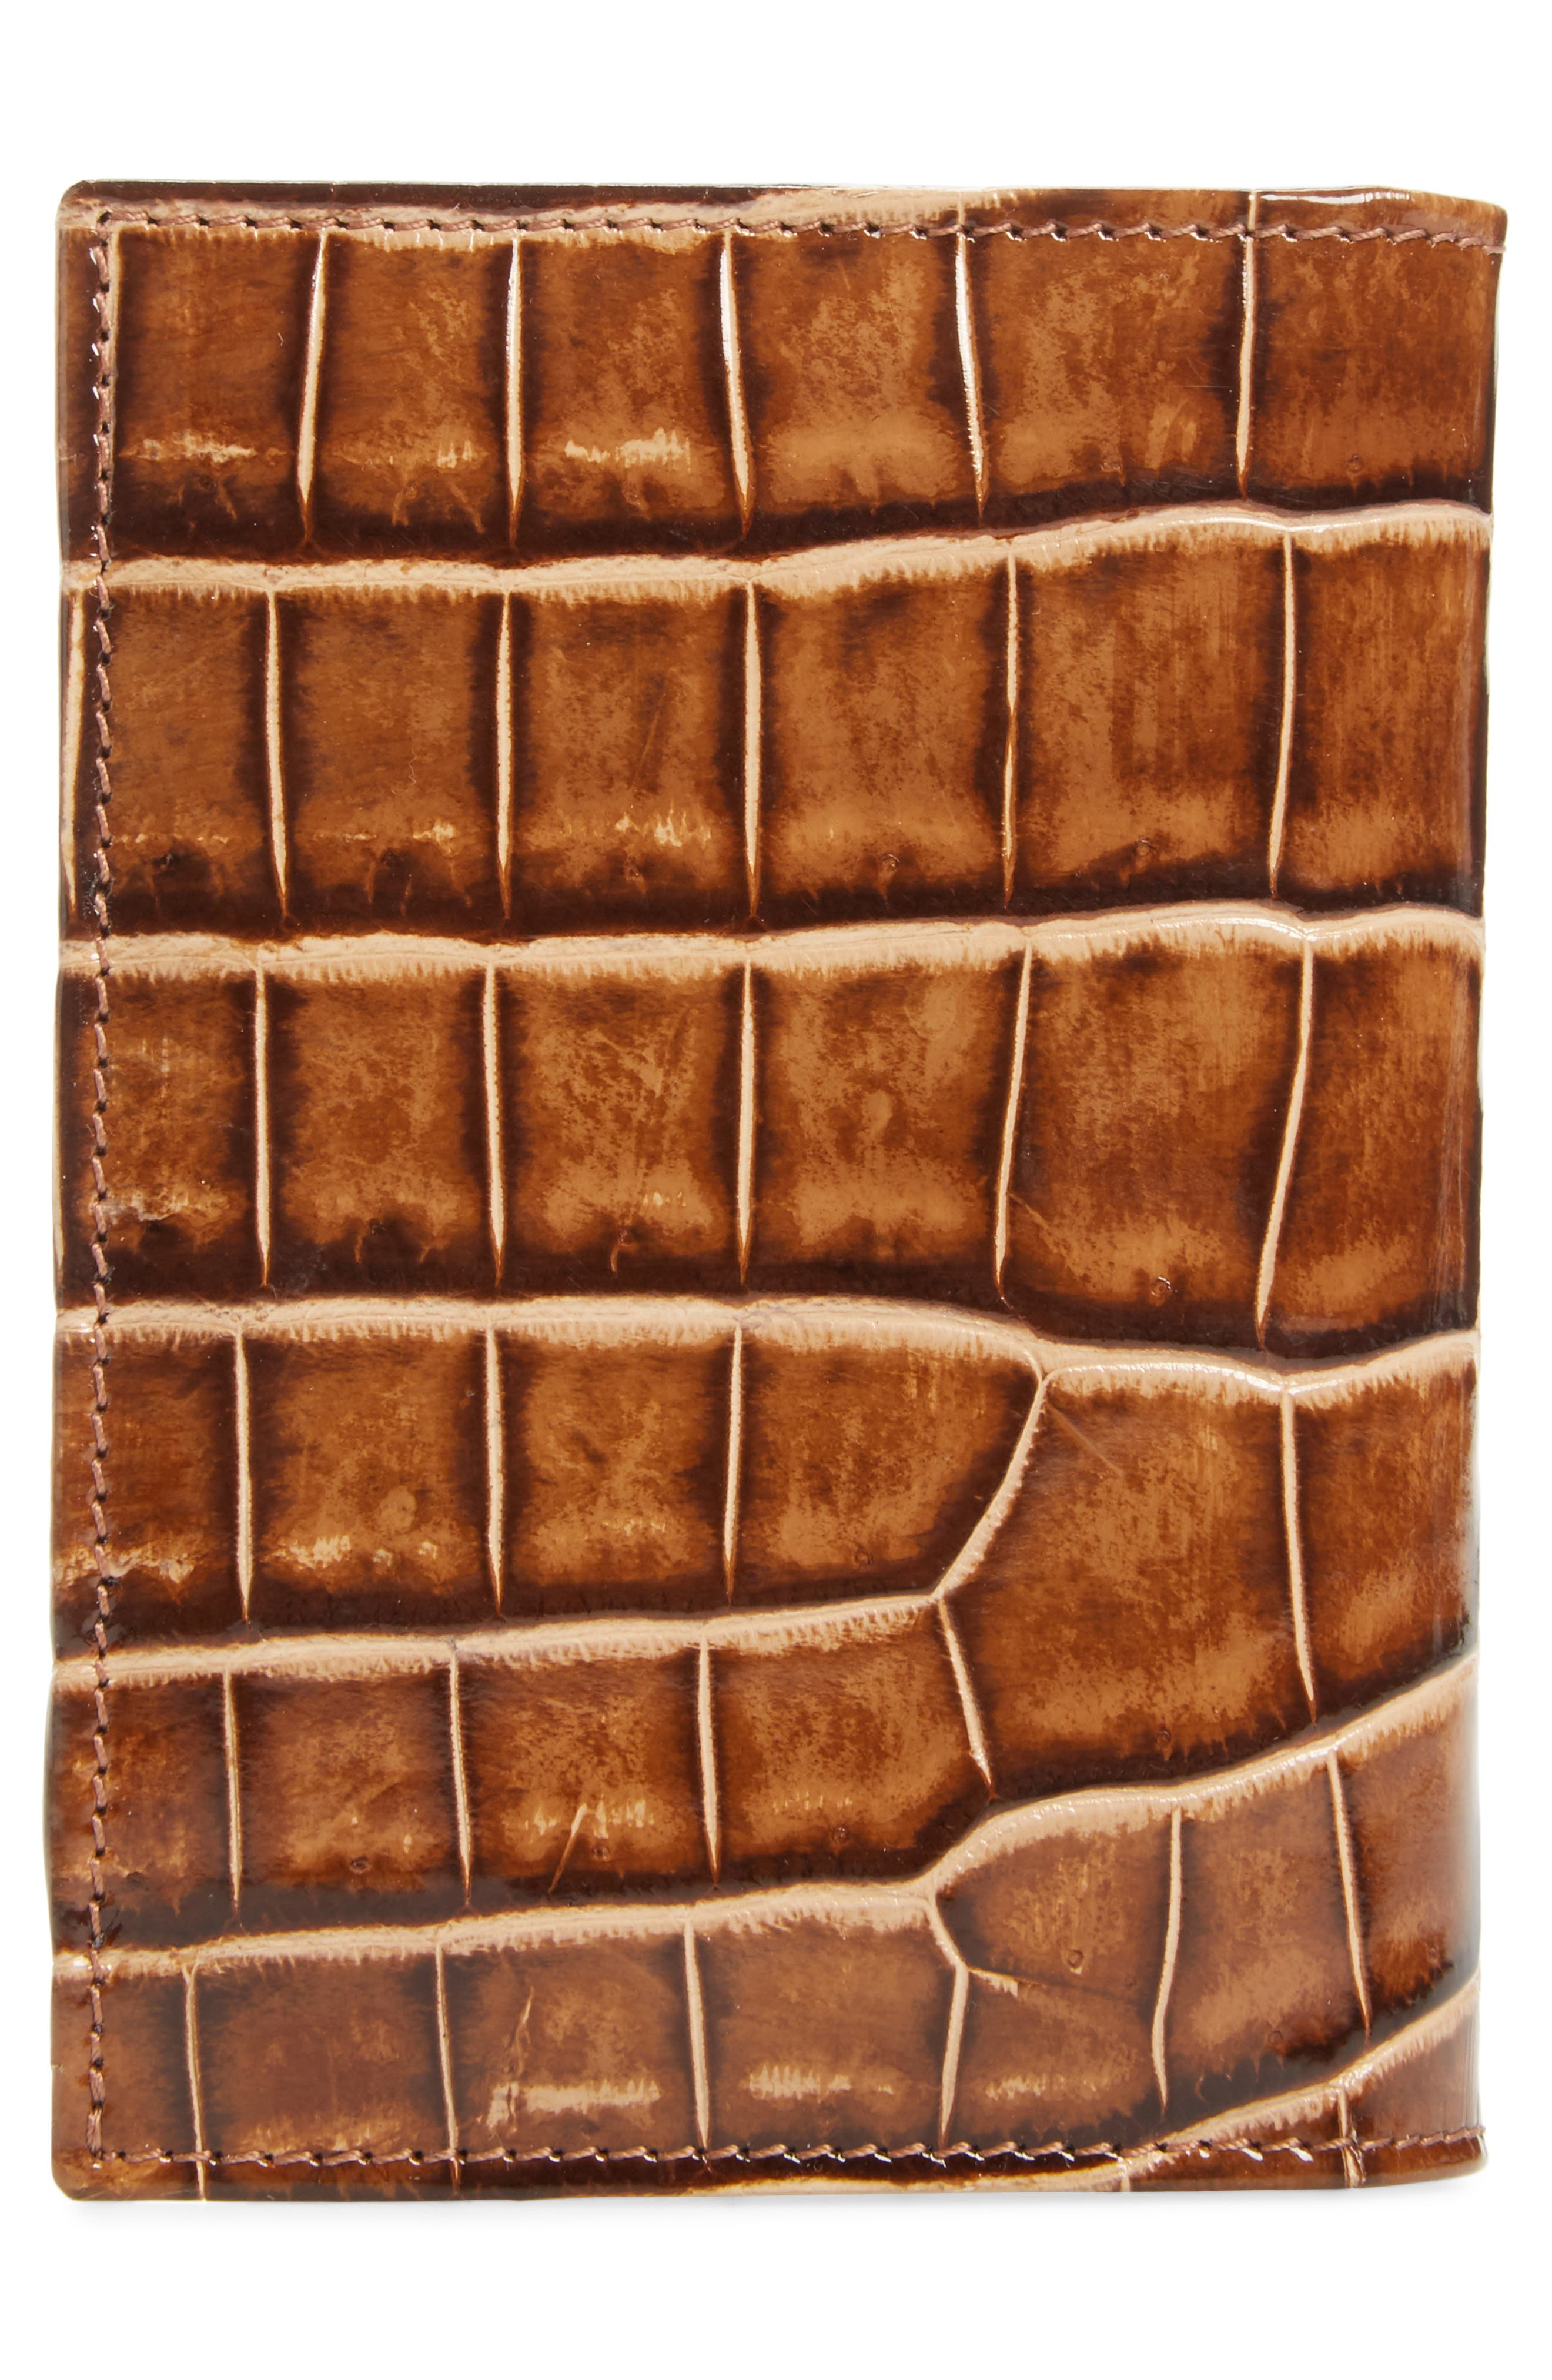 Alligator Leather Trifold Wallet,                             Alternate thumbnail 3, color,                             Honey/ Beige